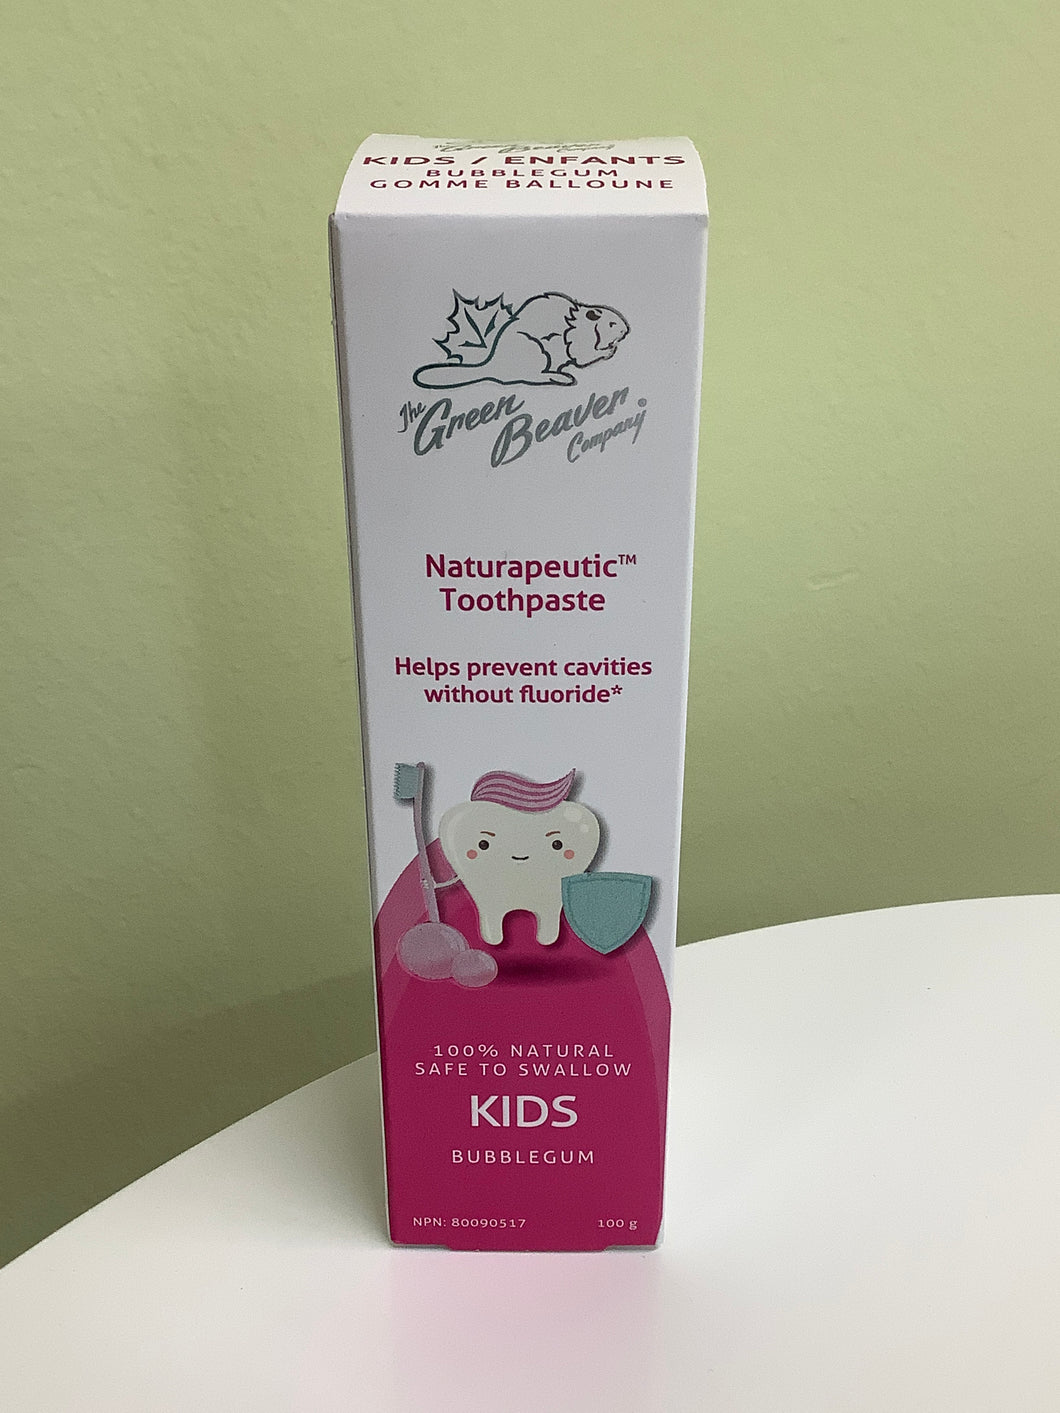 The Green Beaver Co. Kids Bubblegum Naturapeutic Toothpaste